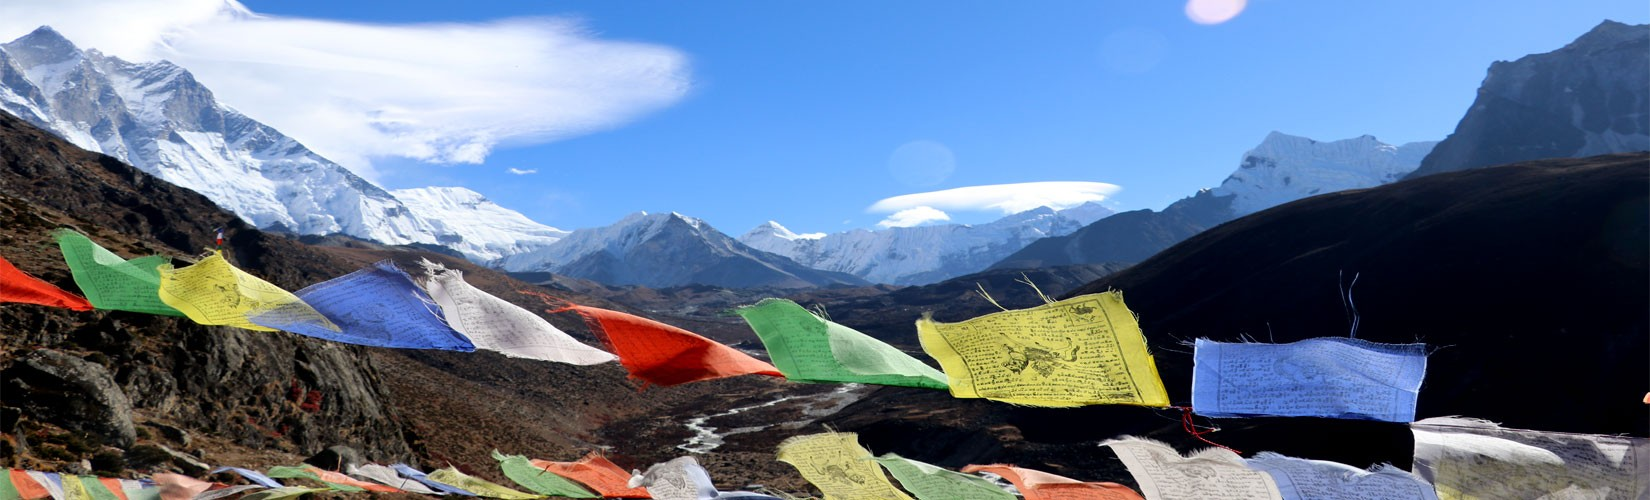 View from Dingboche Stupa Day 5